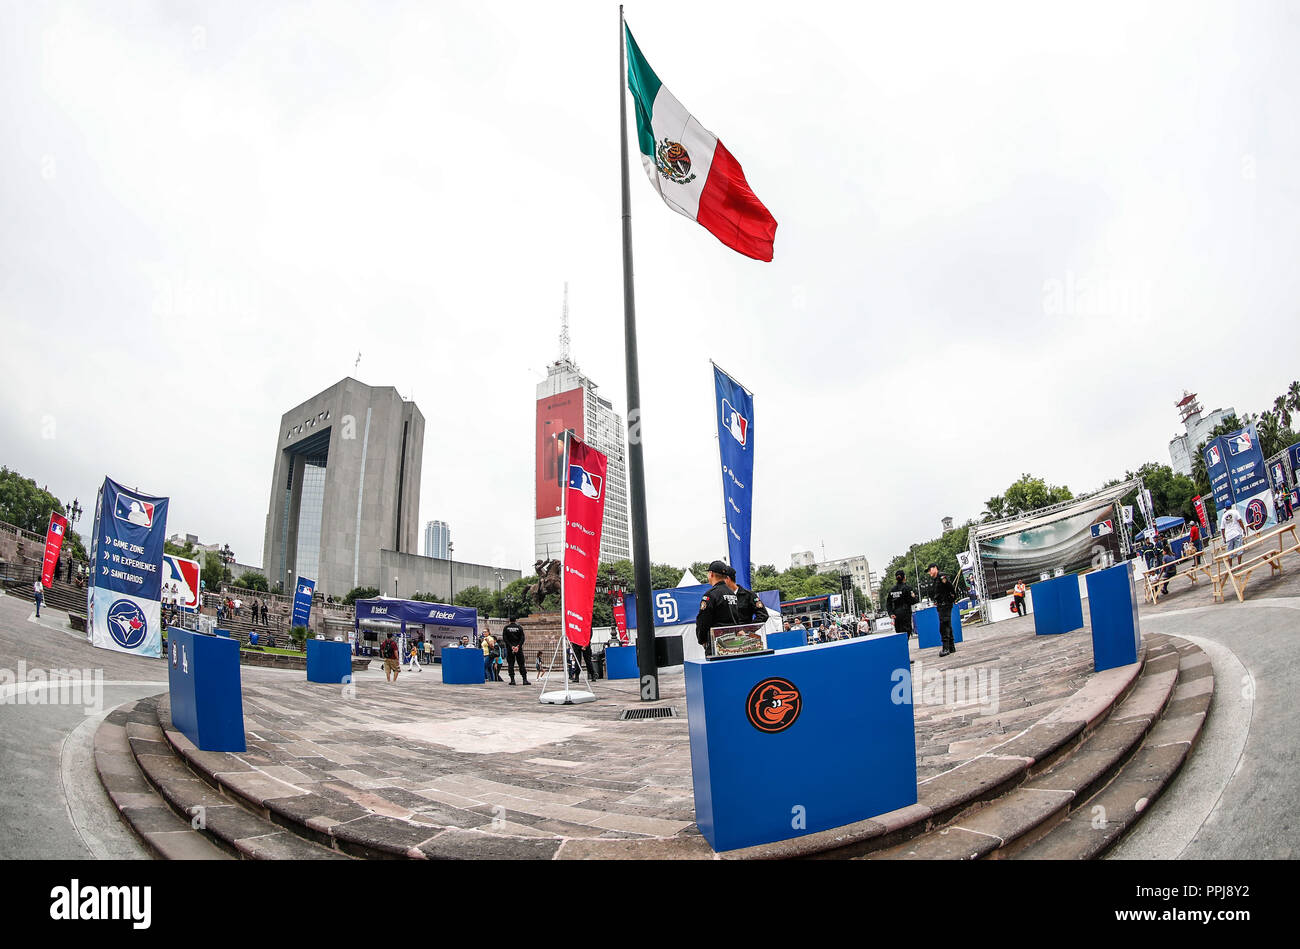 Aspects of the Fan fest of the Major Leagues of Besbol held in the Monumental Plaza of Monterrey Nuevo Leon, prior to the Series in Mexico with the Do - Stock Image